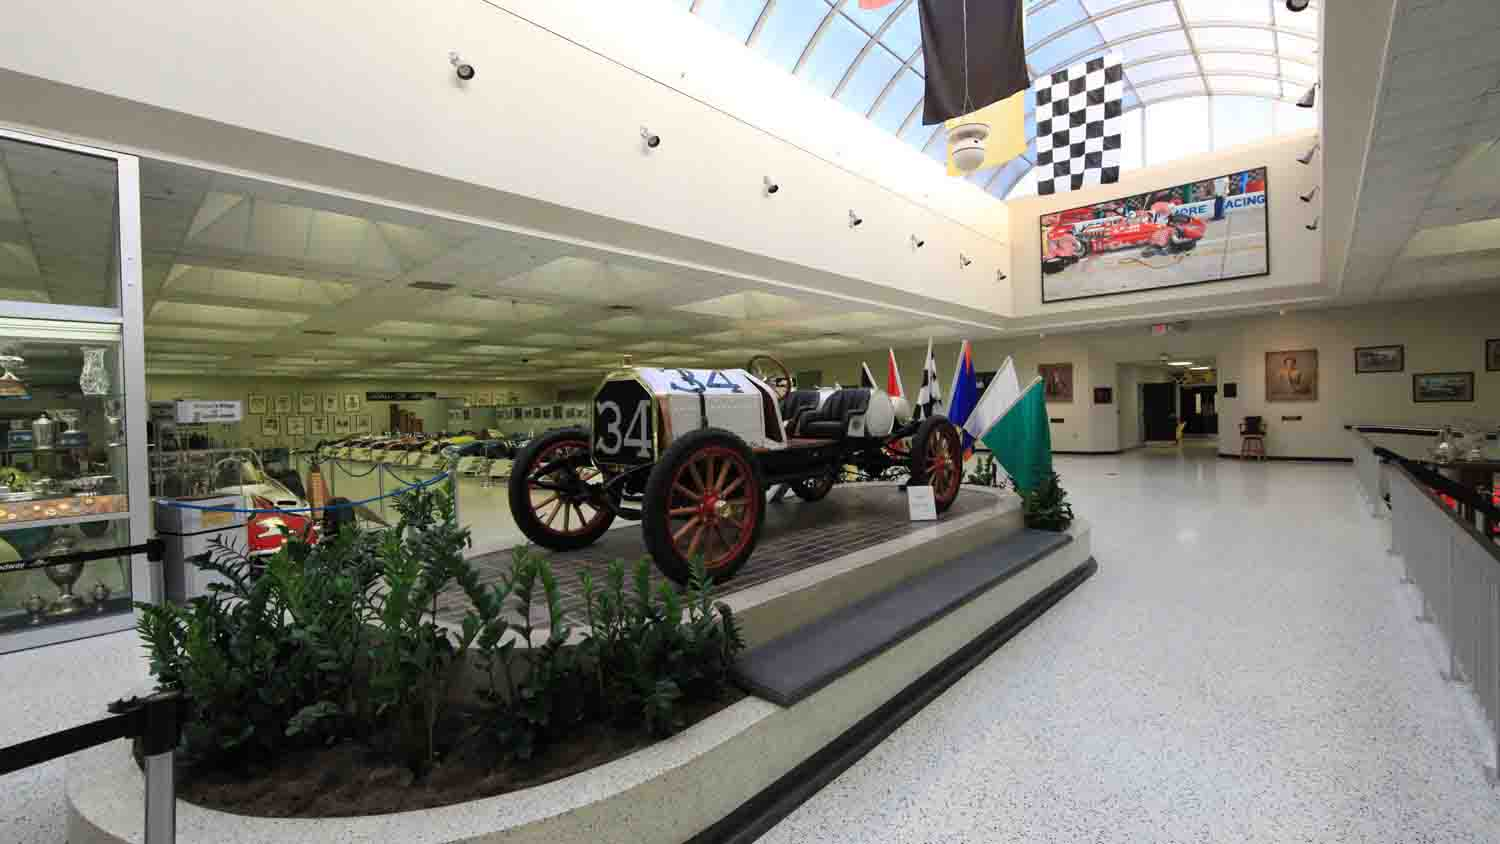 Ims hall of fame museum 6